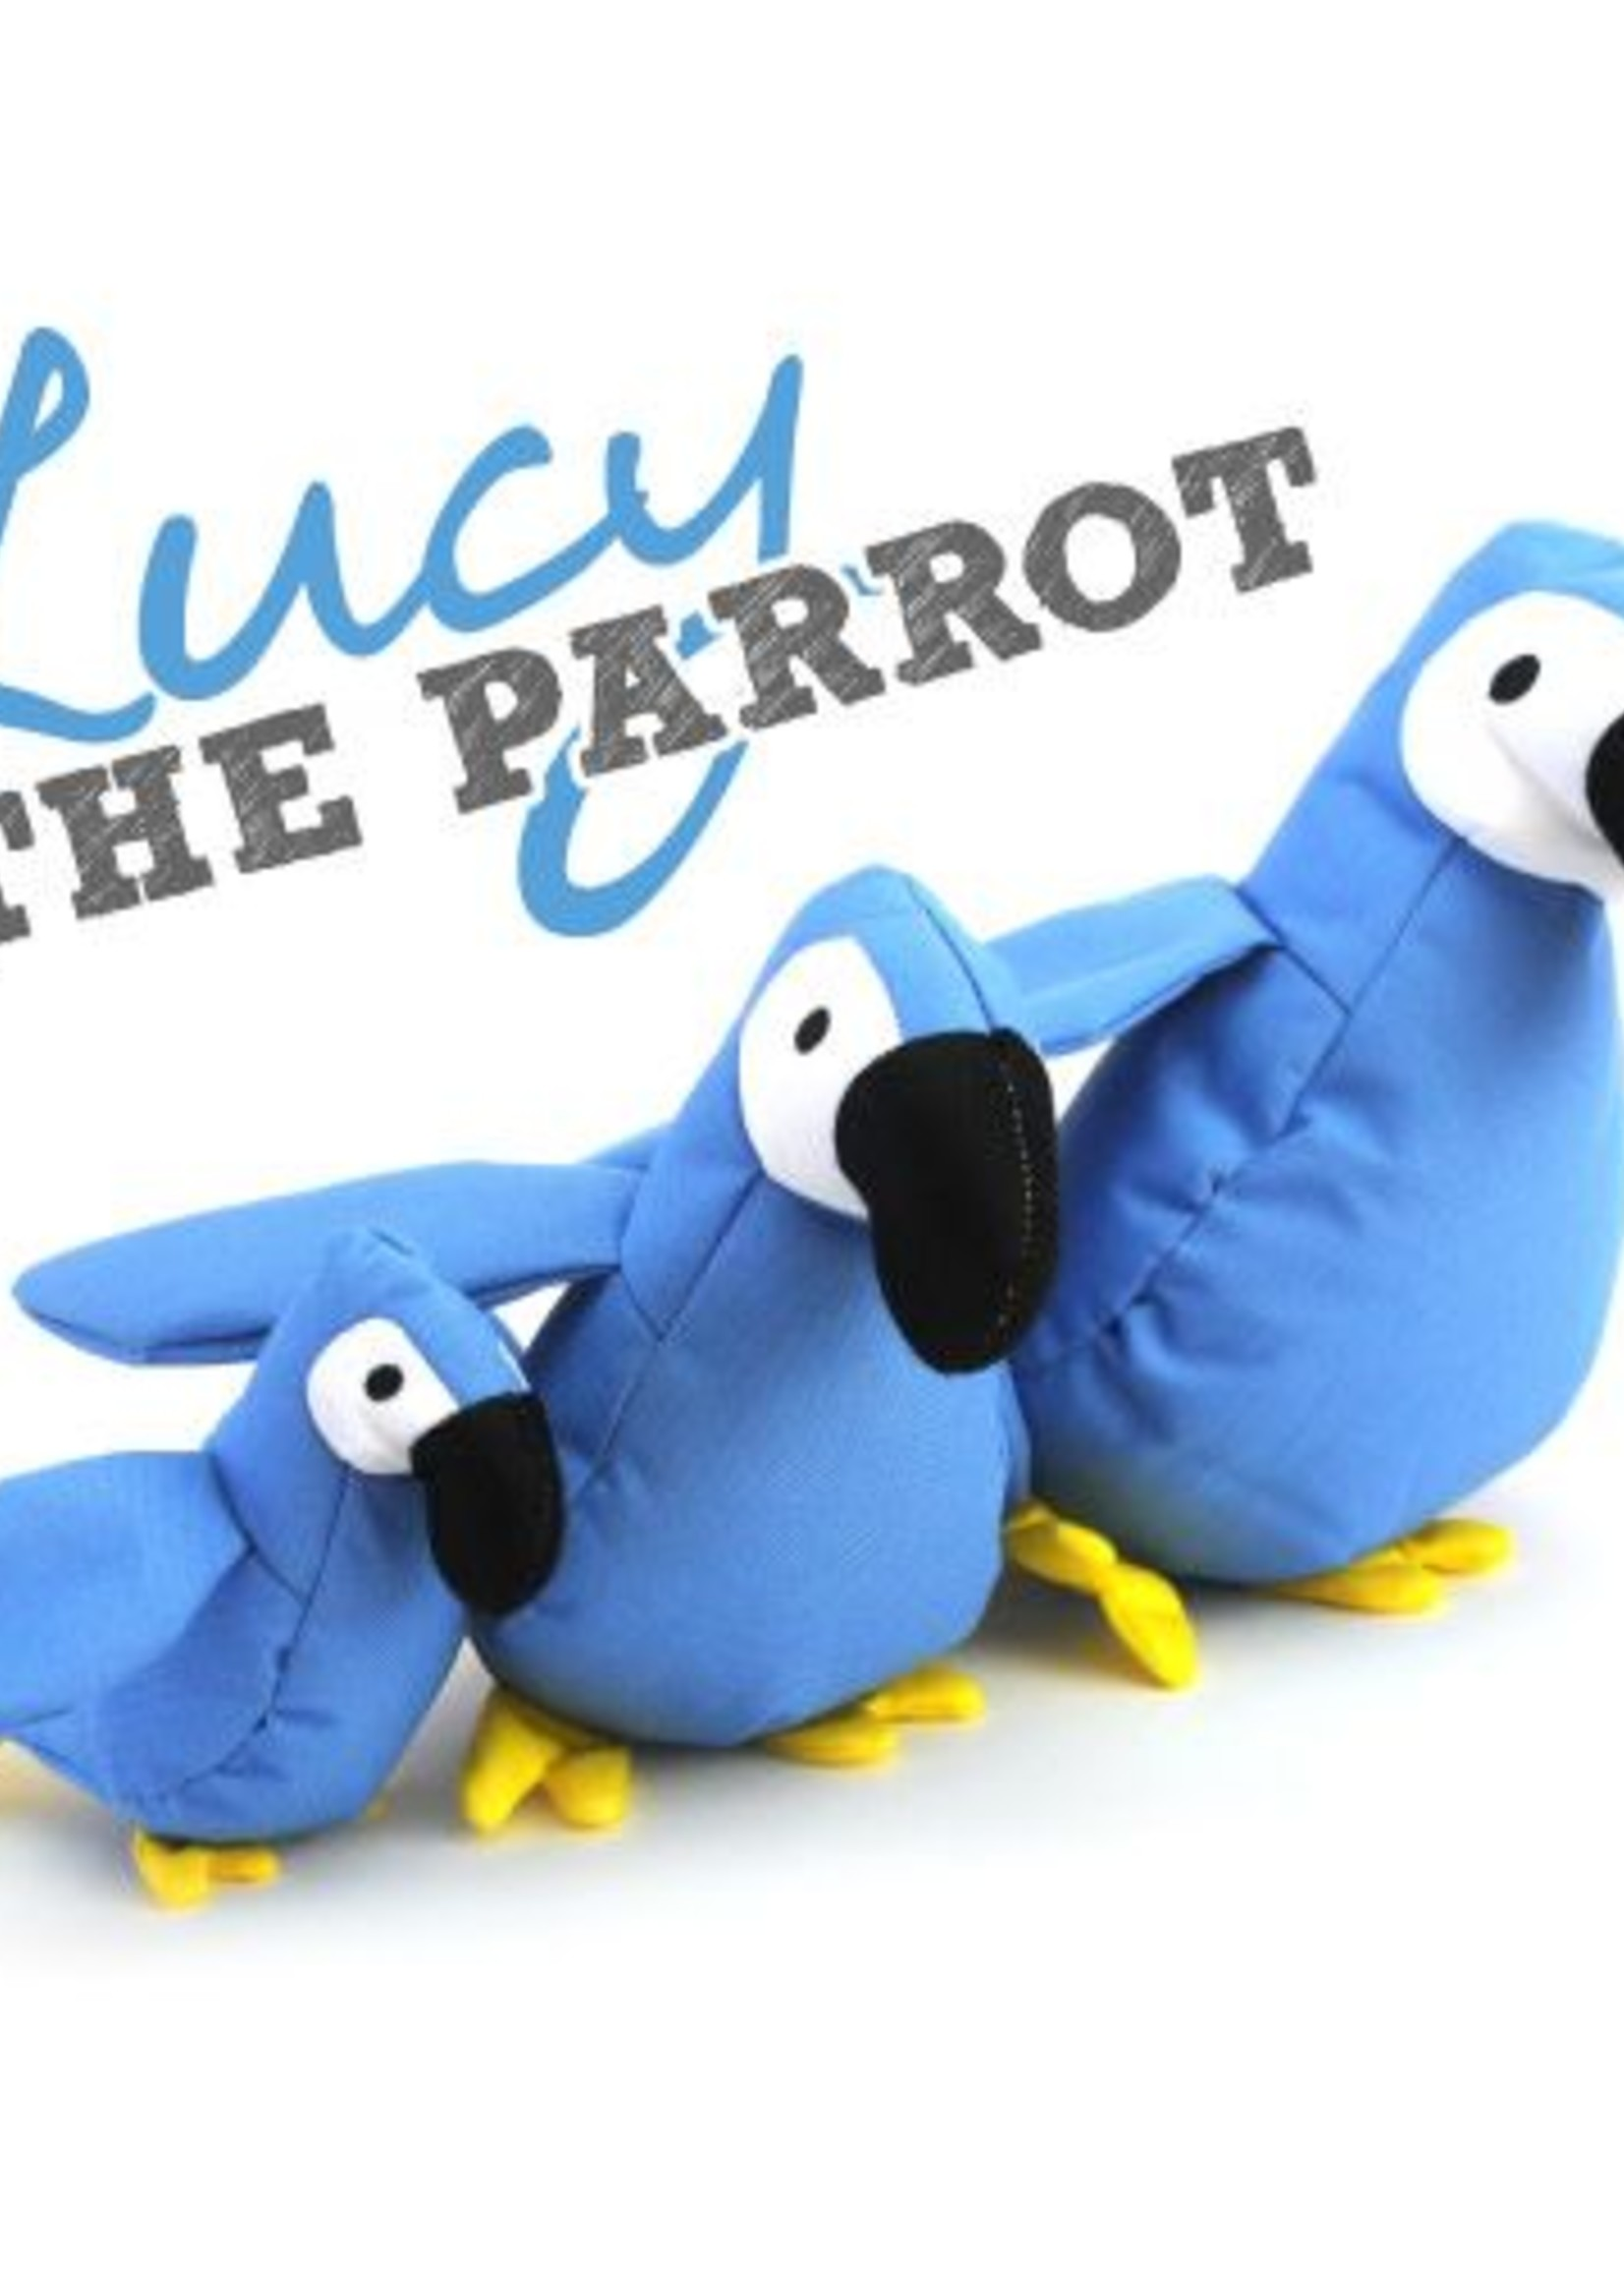 Beco Lucy the Parrot LARGE